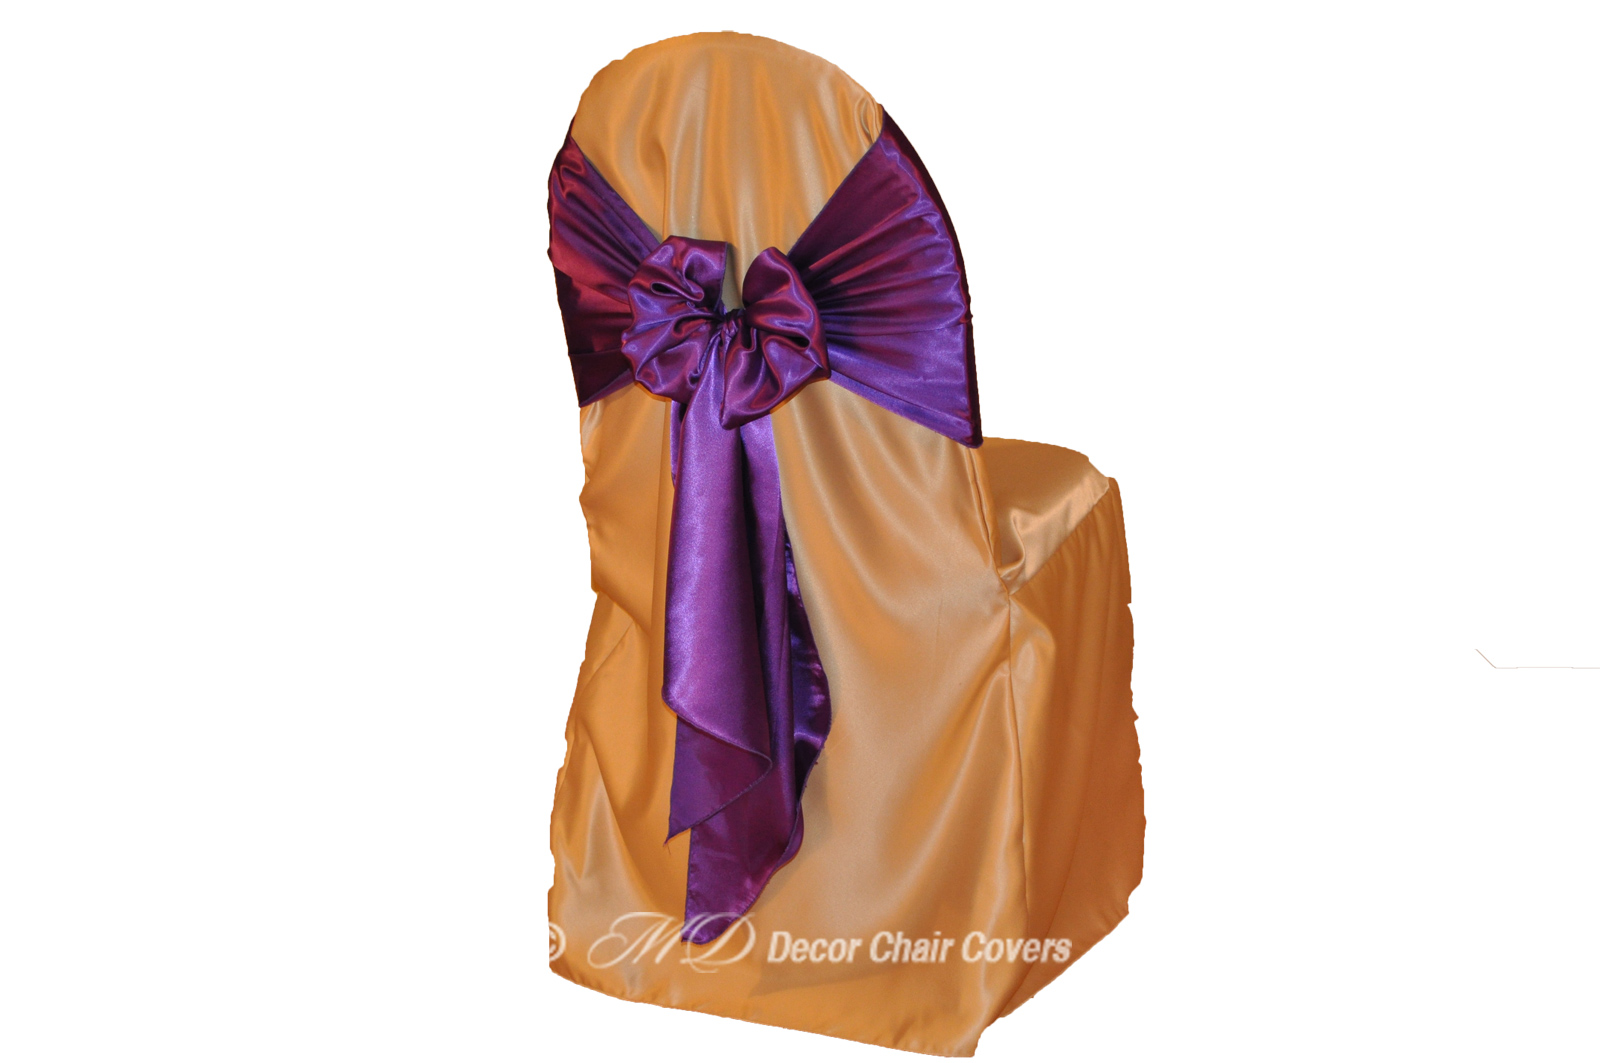 GOLD-SATIN-LAMOUR-CHAIR-COVER